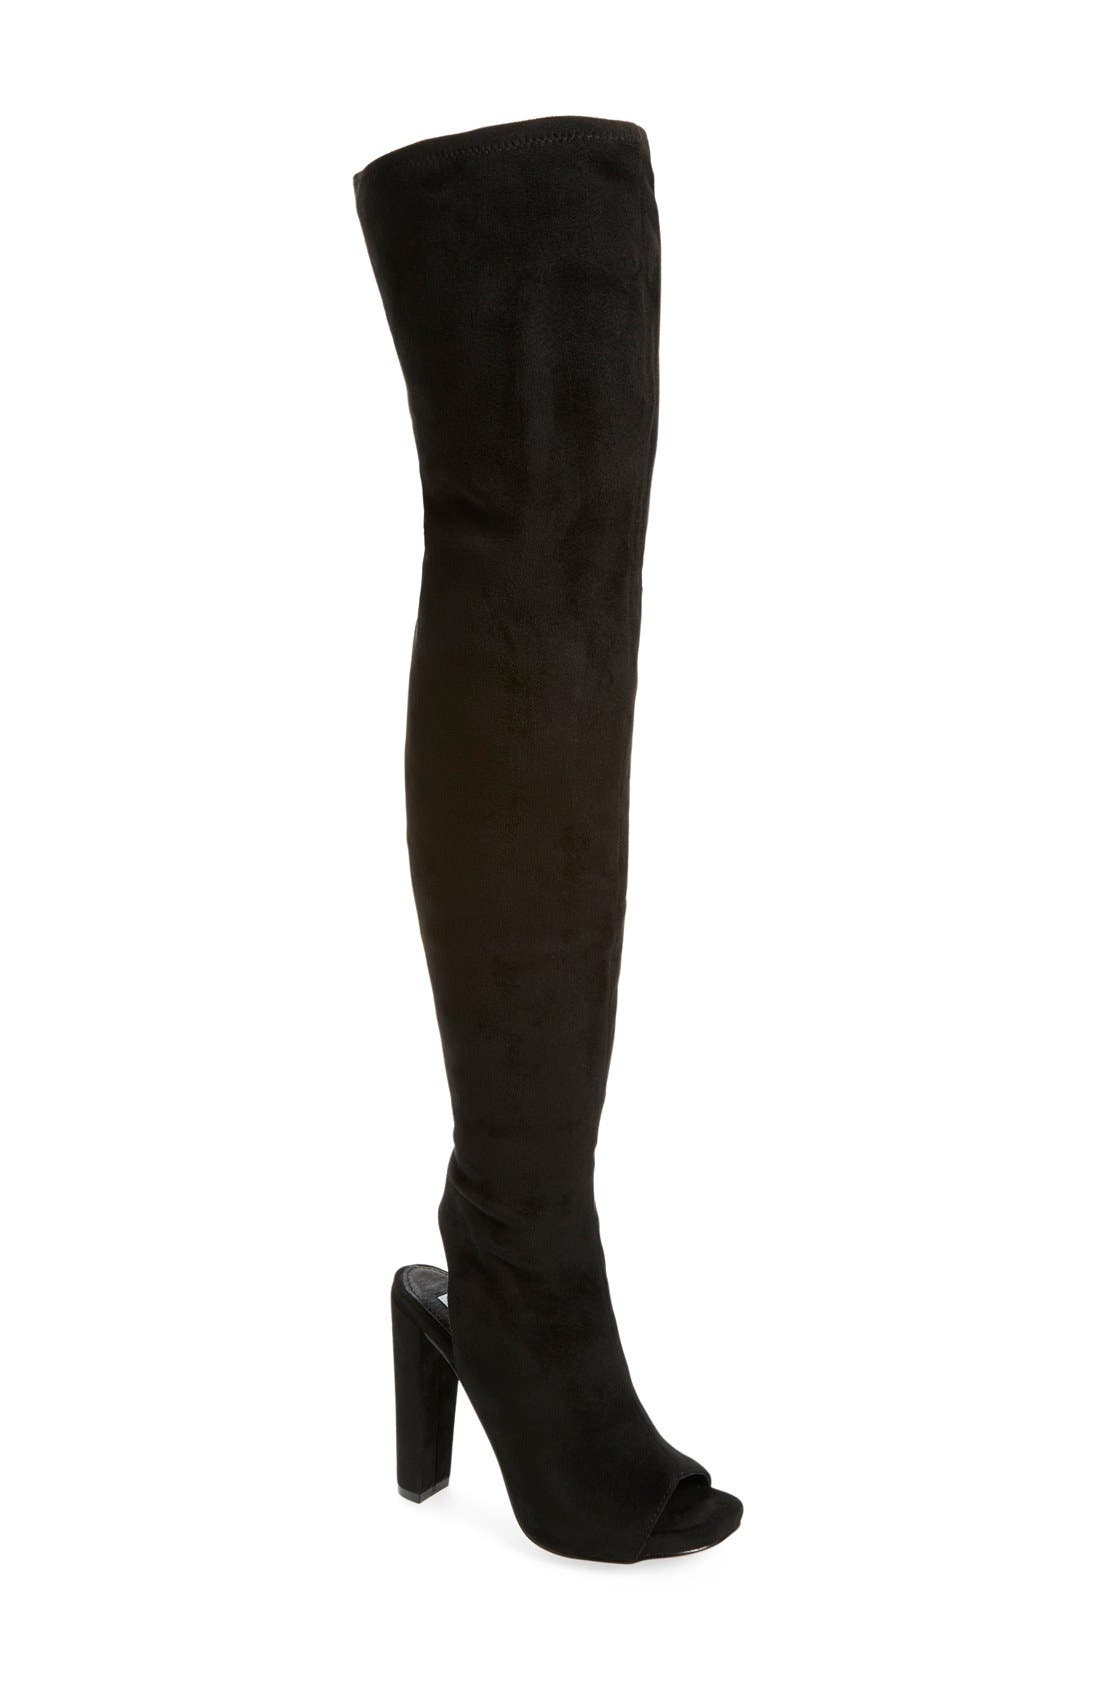 Alternate Image 1 Selected - Steve Madden 'Yimme' Over the Knee Boot (Women) (Wide Calf)